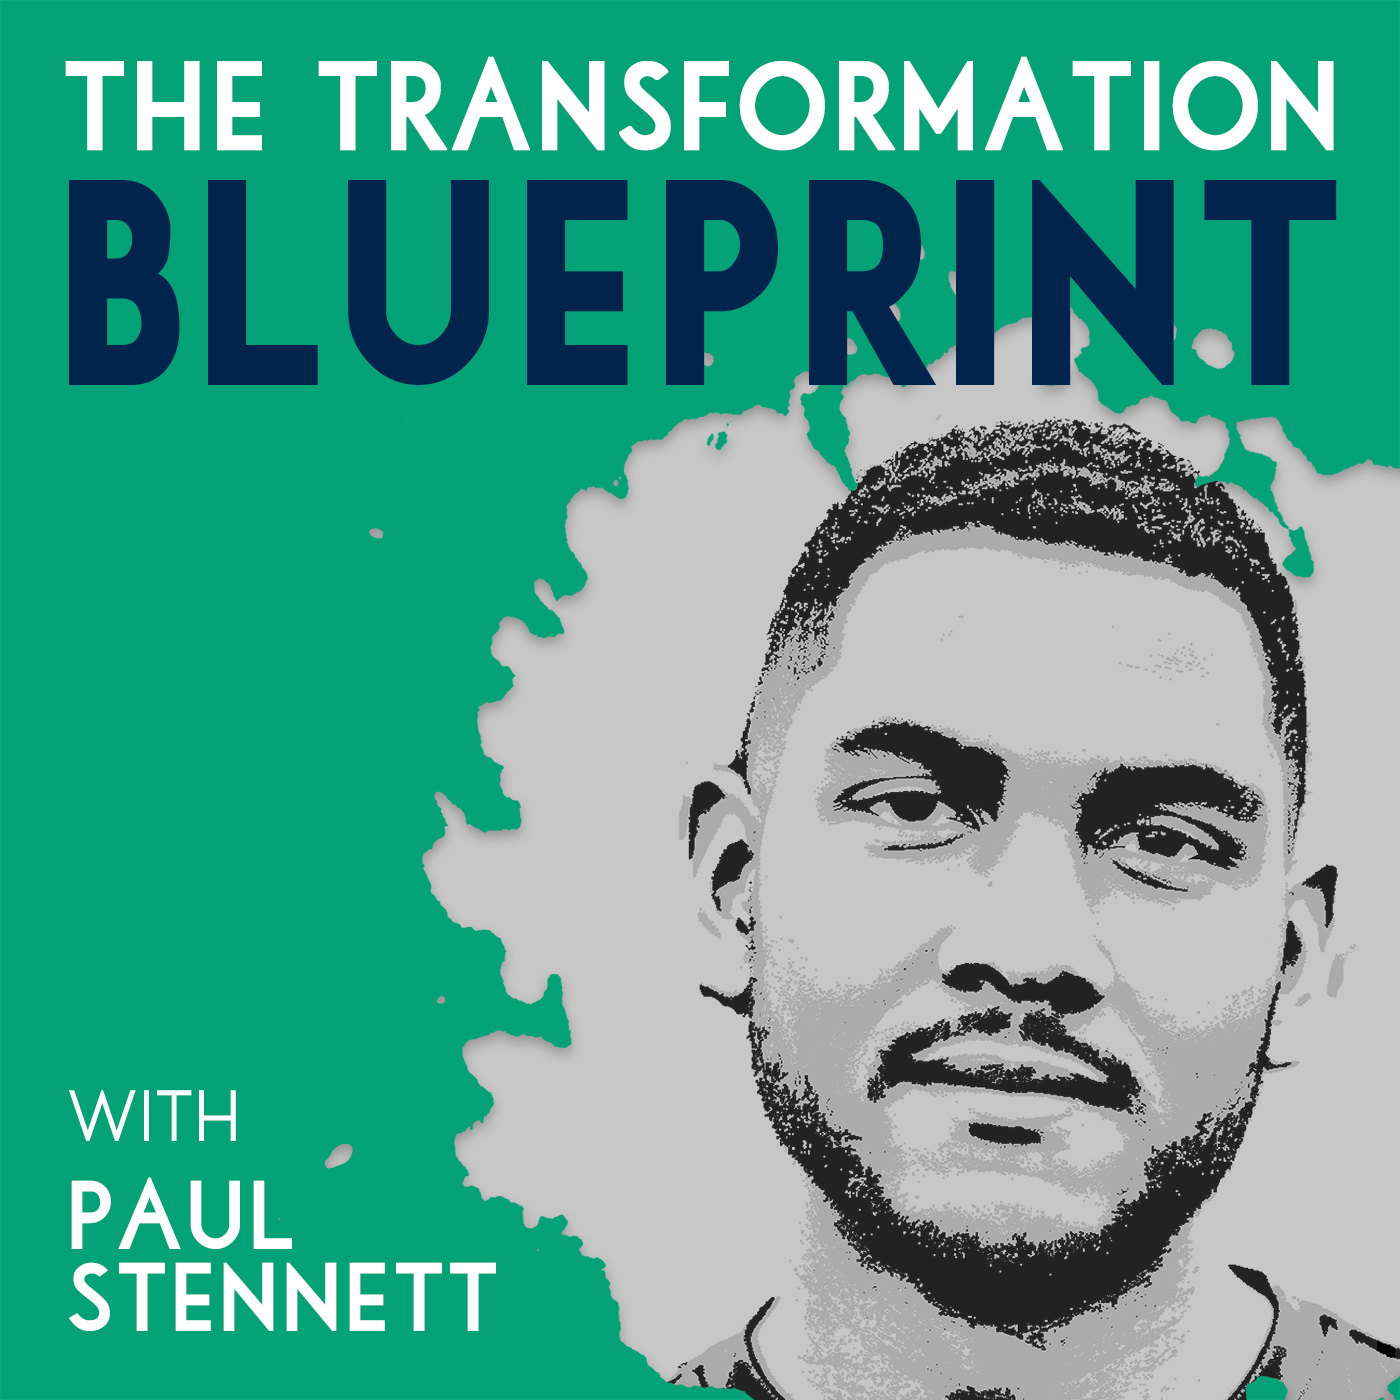 The_Transformation_Blueprint_with_Paul_Stennett